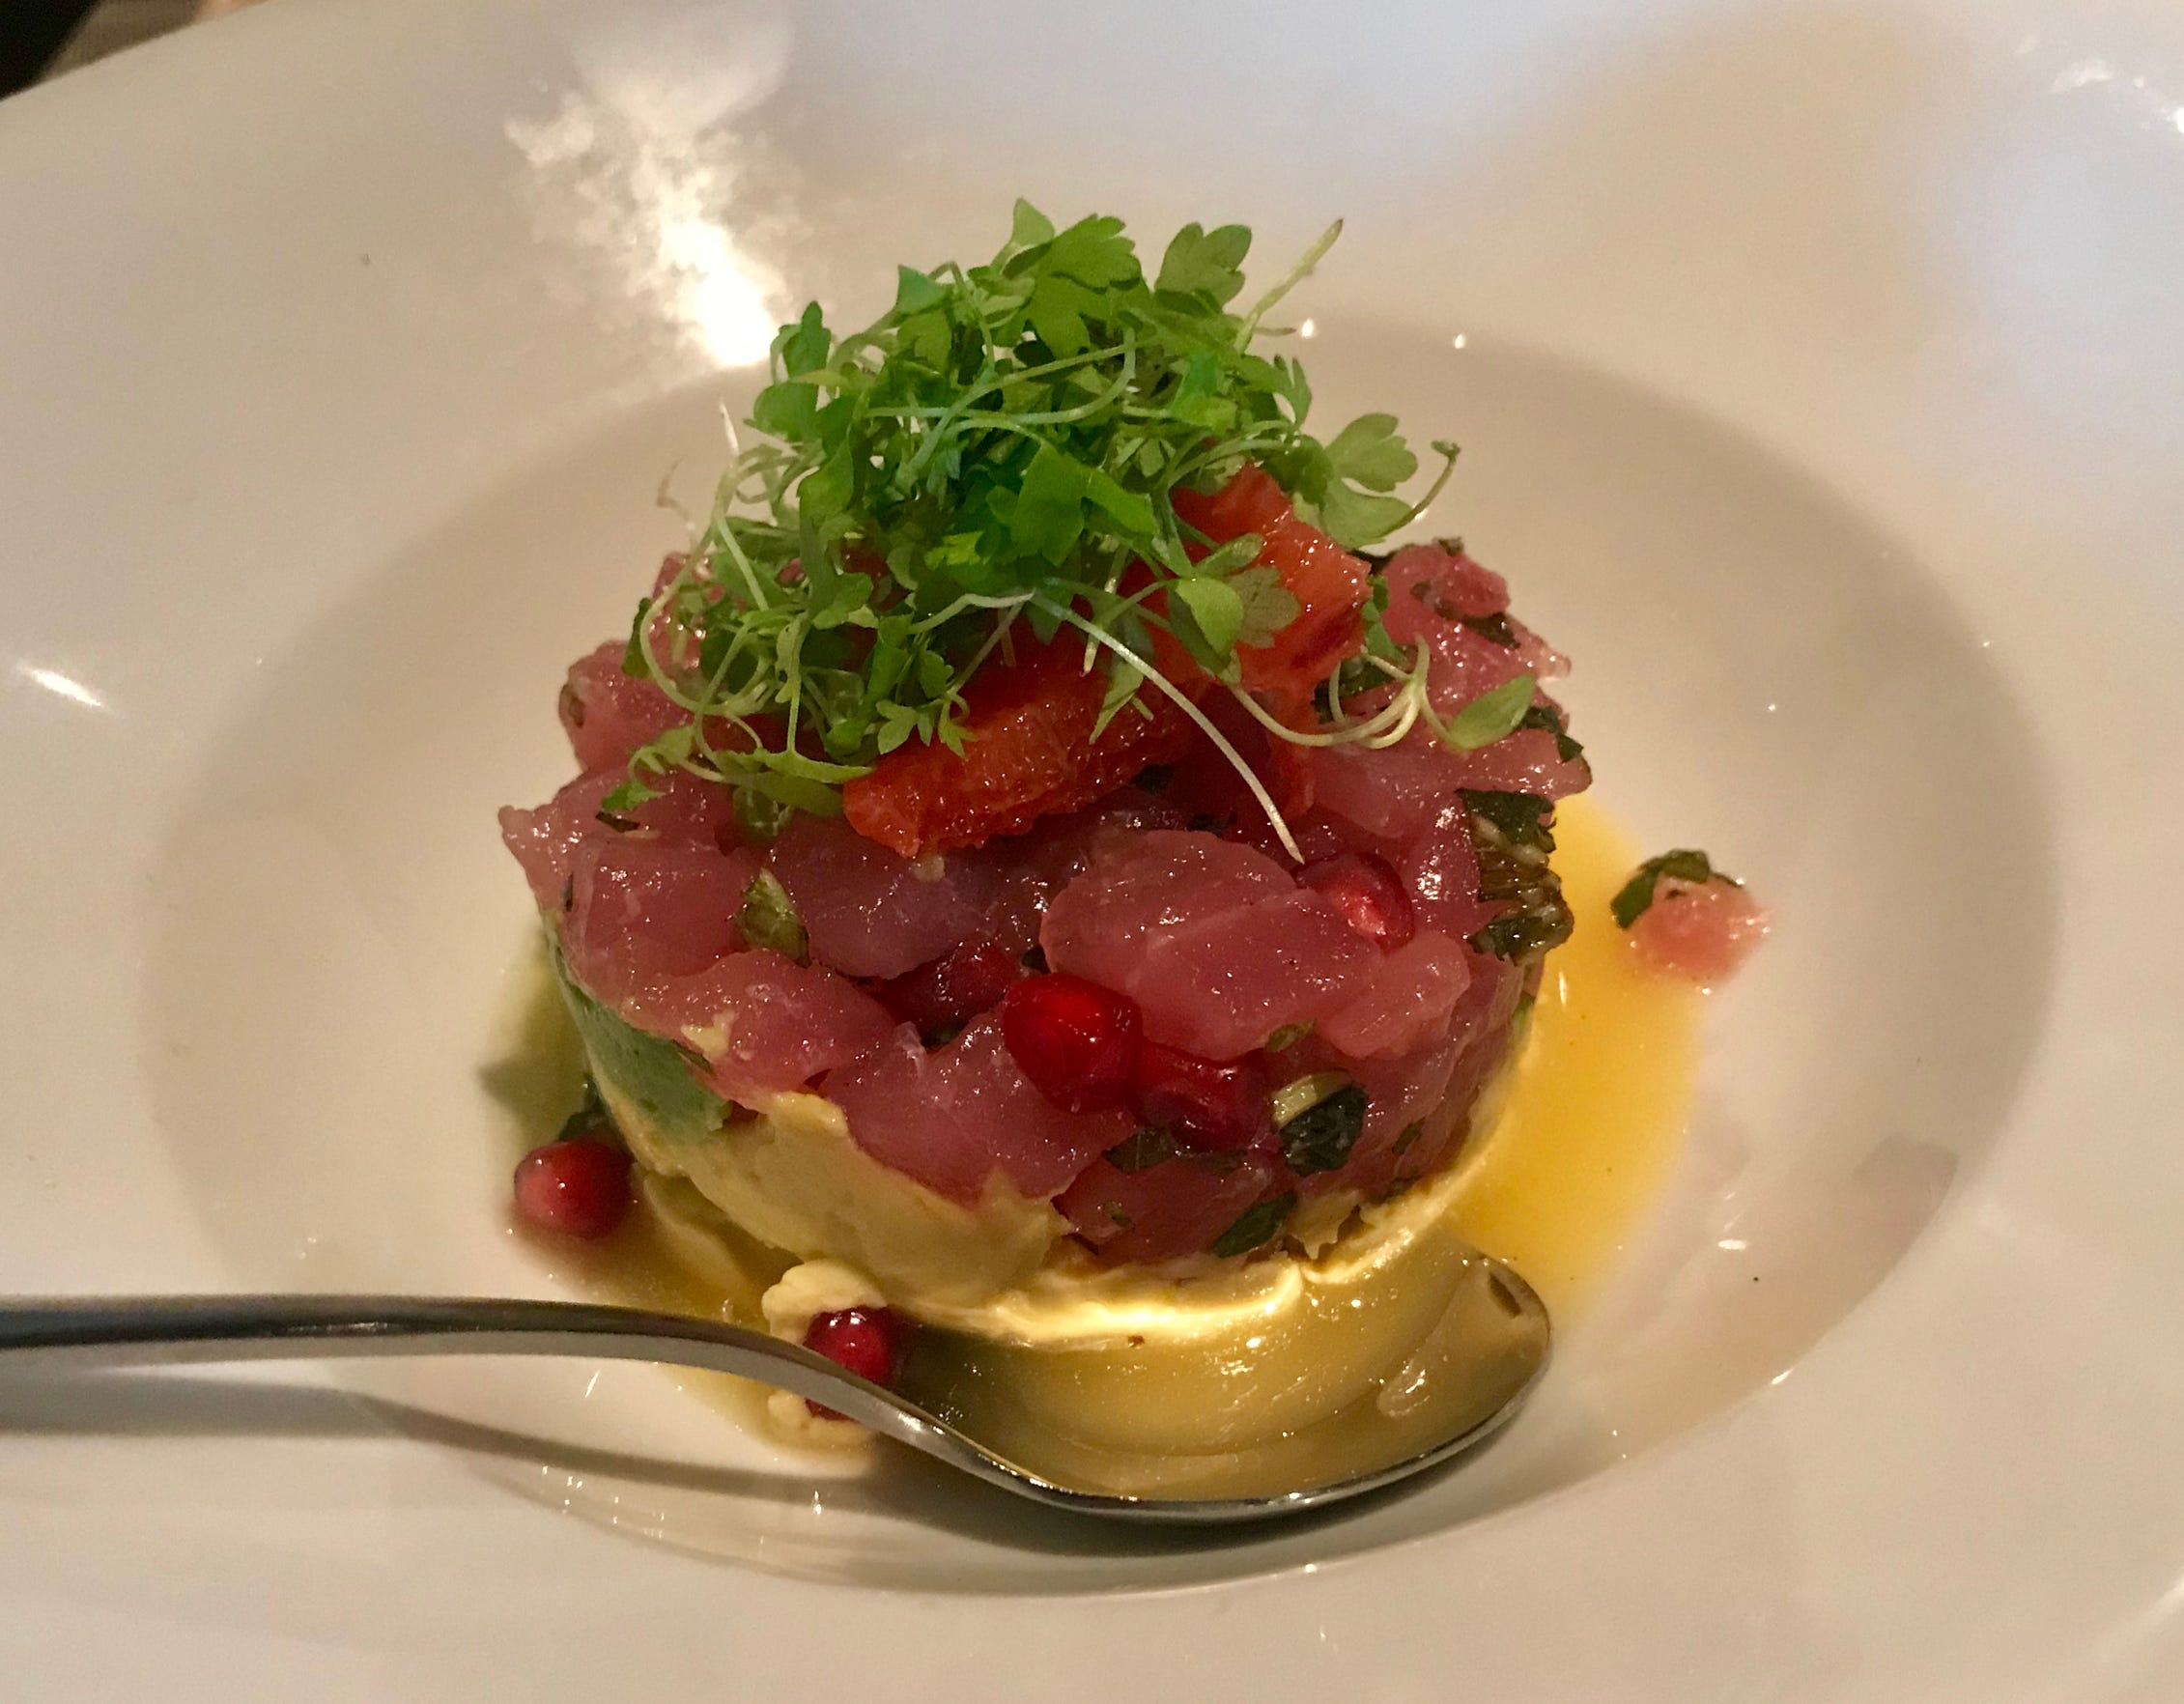 The tuna tartare, flavored with citrus and dotted with pomegranate seeds, is served over avocado at Jake's steakhouse, 21445 W. Gumina Road, Pewaukee.